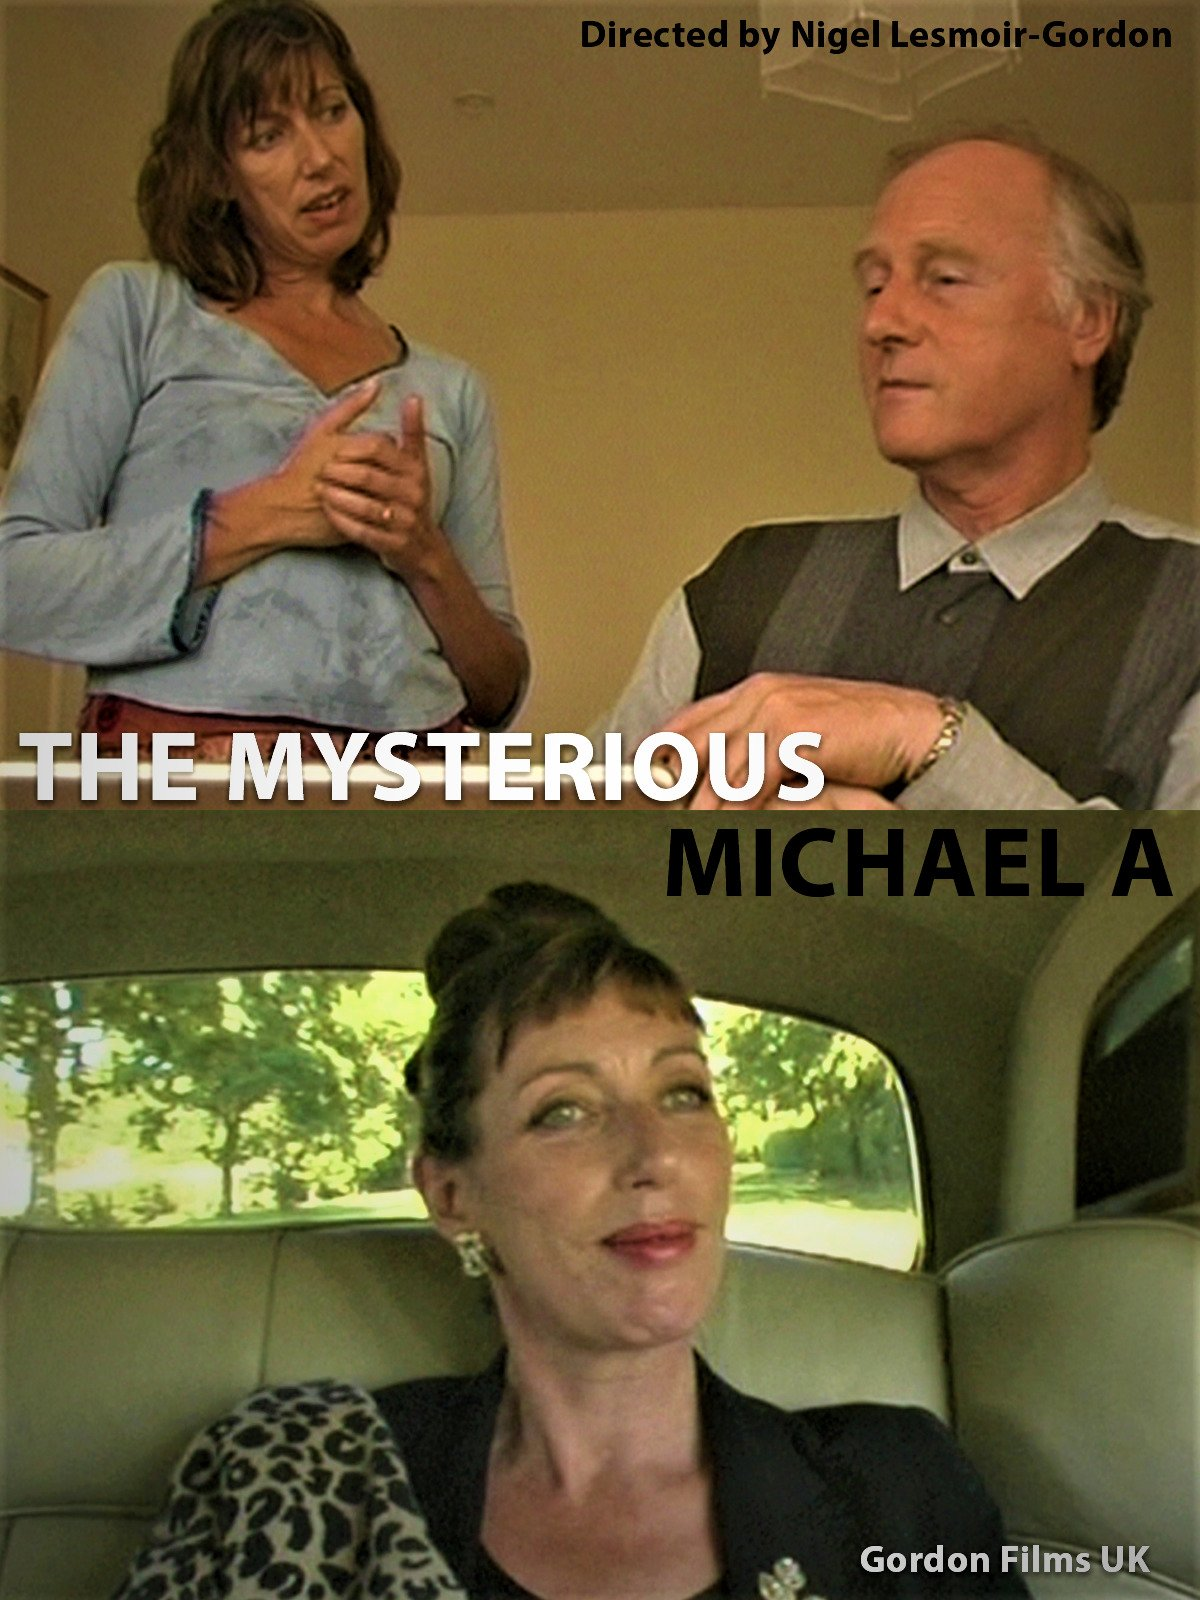 The Mysterious Michael A